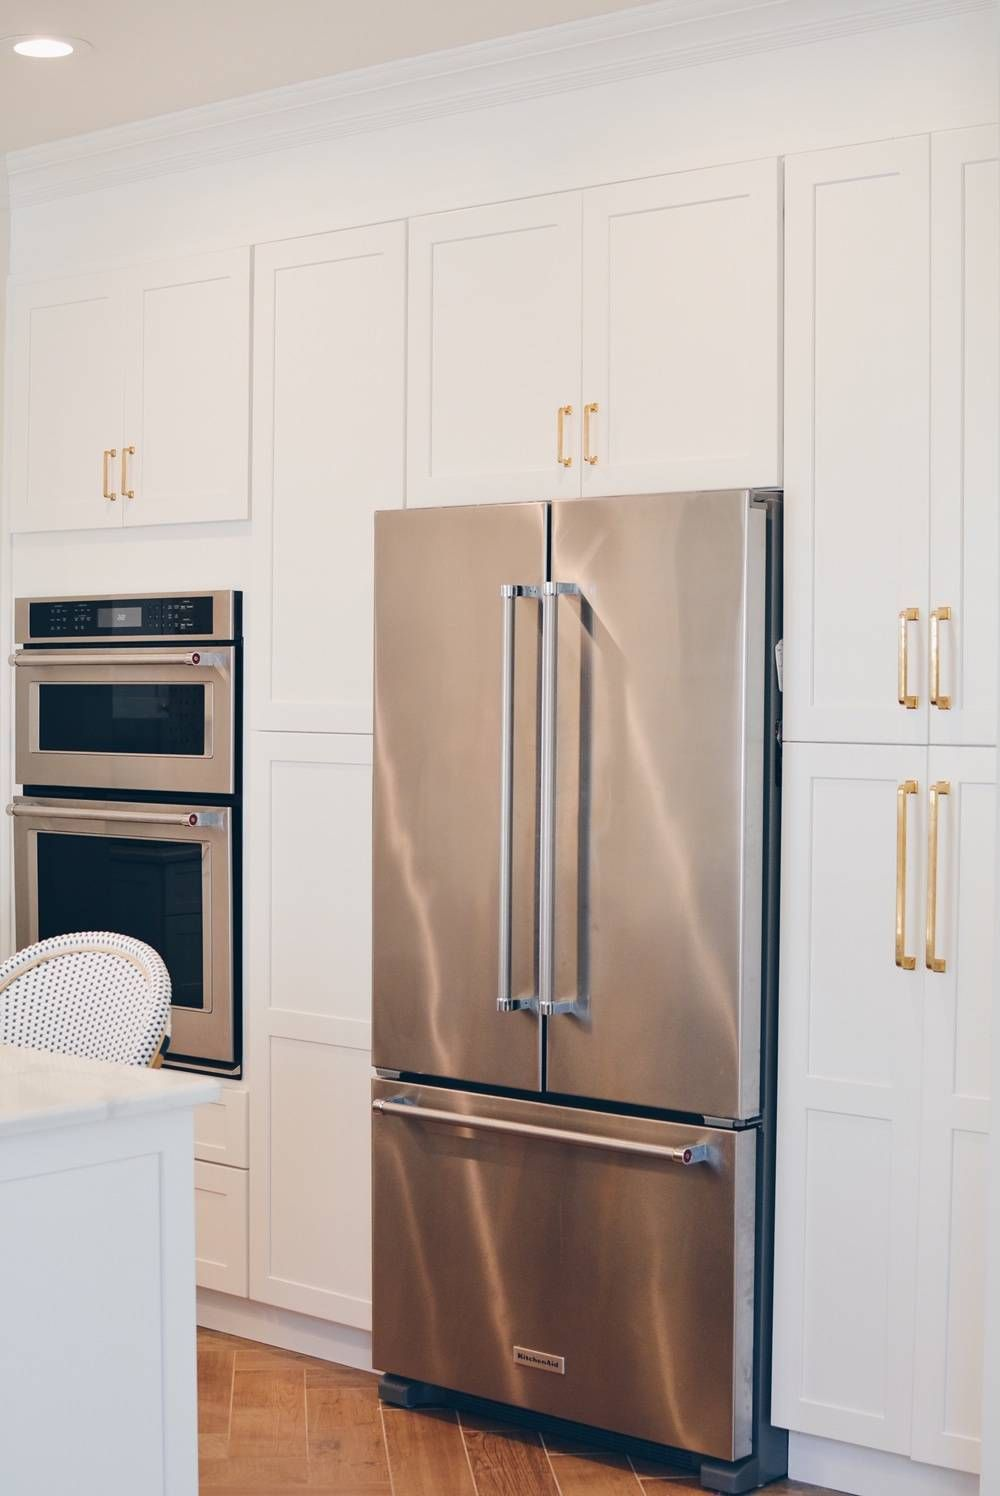 Fabuwood Cabinet Review My Galaxy Frost Kitchen The Pink Dream Fabuwood Cabinets Refacing Kitchen Cabinets Kitchen Cabinets